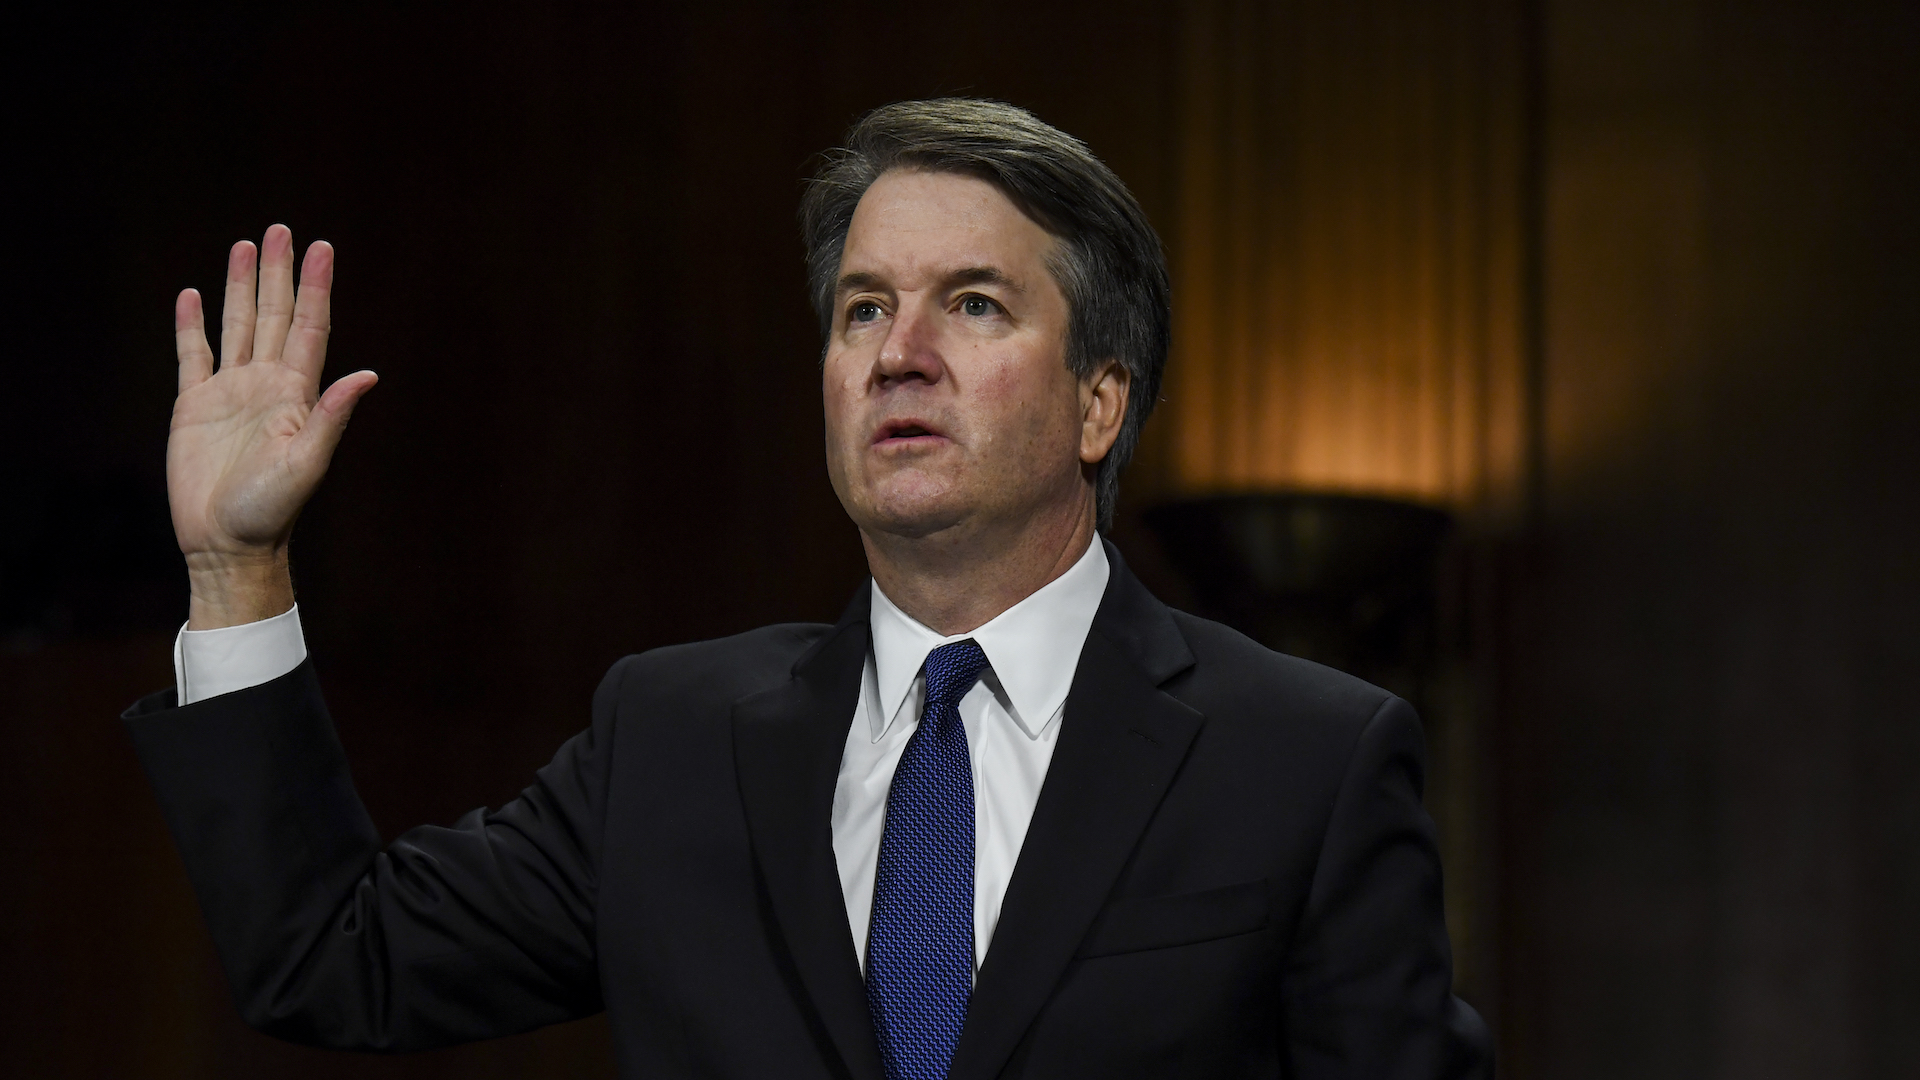 D.C. Circuit sent complaints about Kavanaugh's testimony to Chief Justice Roberts